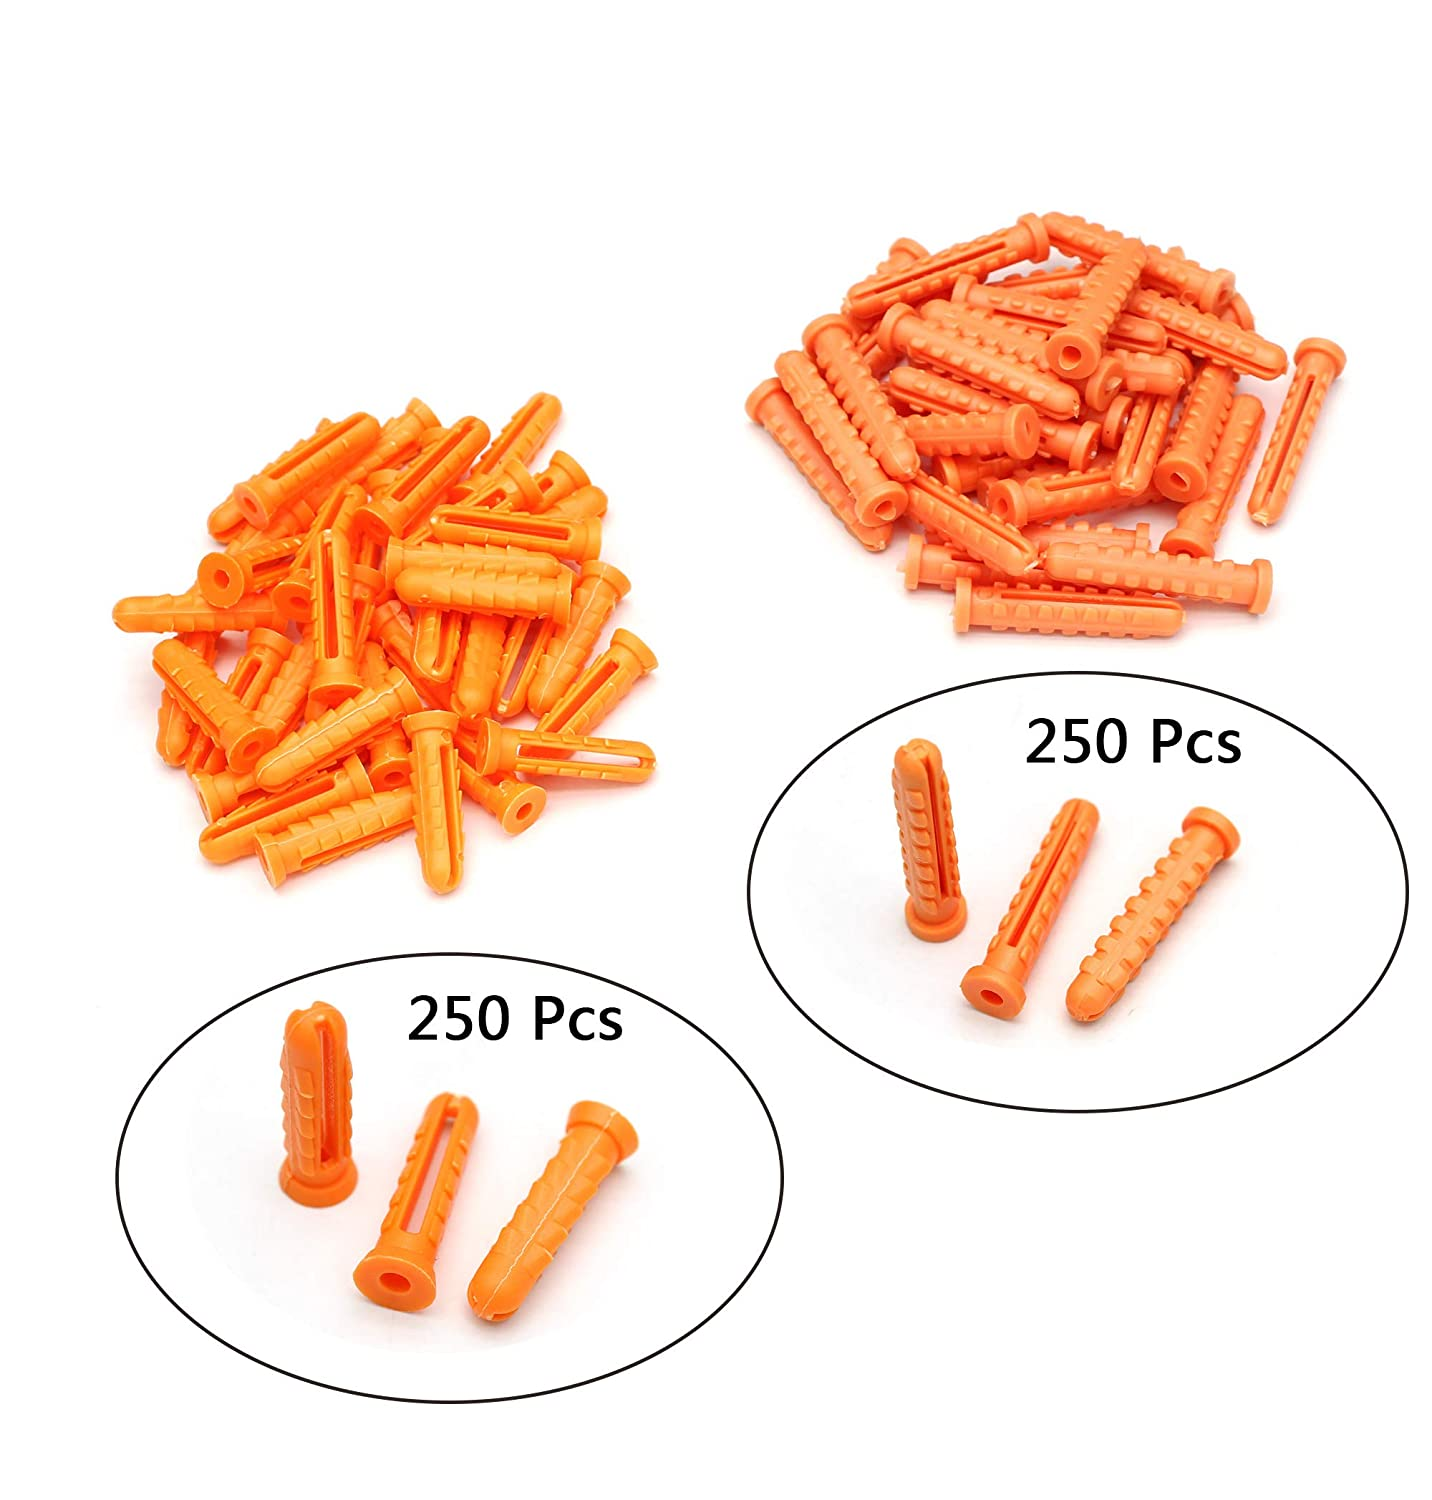 Hollow-Wall Anchors Orange 500 Pcs Tueascallk M6 x 25mm//M6 x33mm The Most Commonly Used Expansion Fastening Drywall Anchor